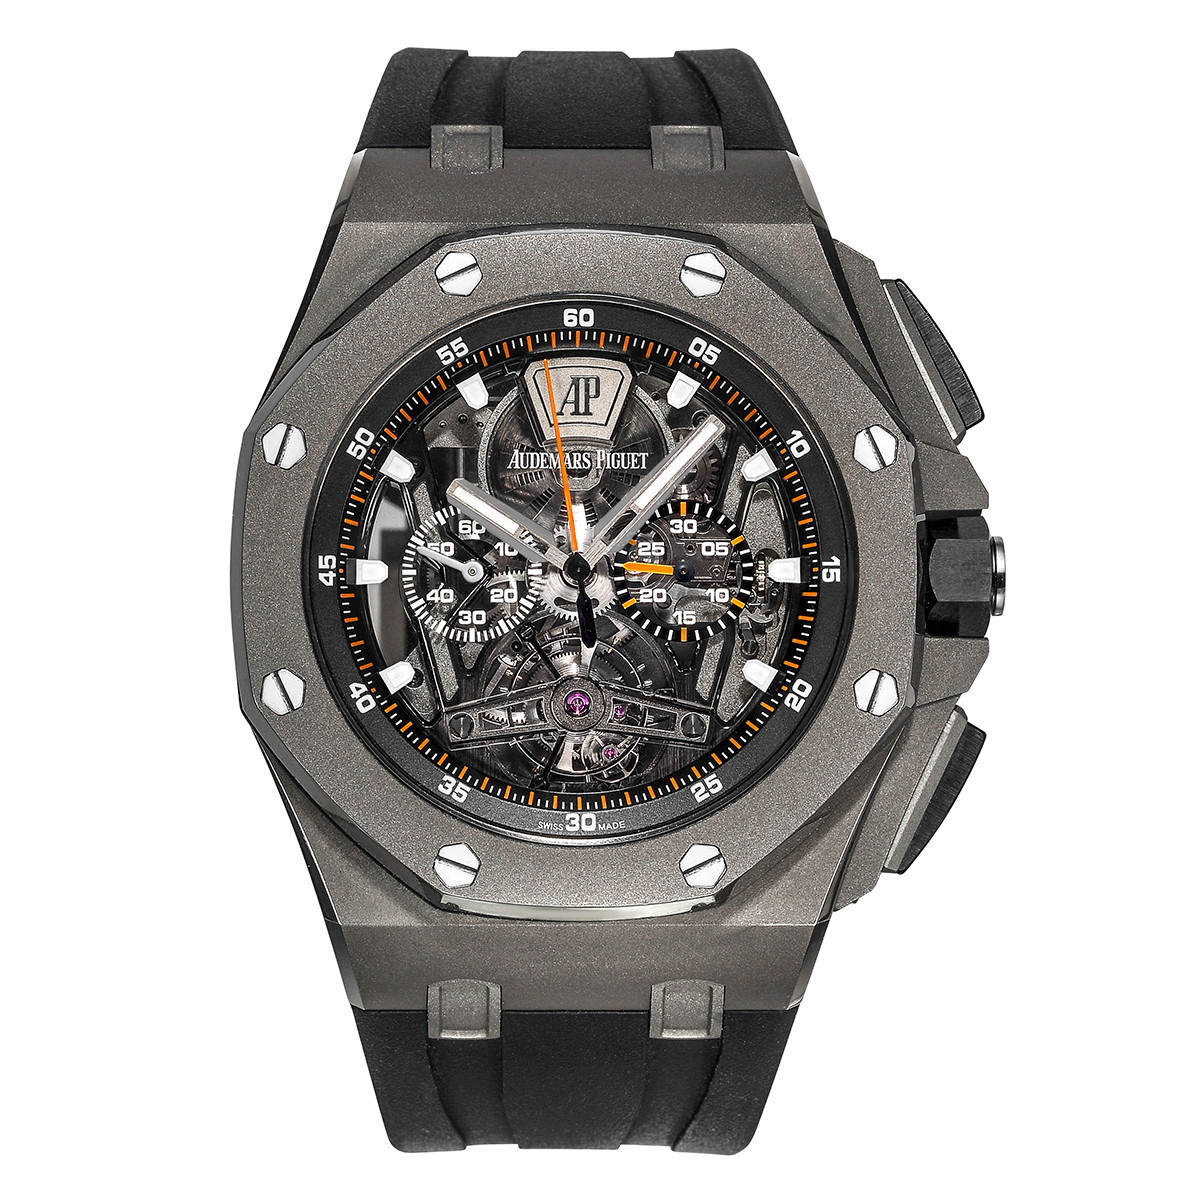 Royal Oak Offshore Tourbillon Chronograph (26407TI.GG.A002CA.01)